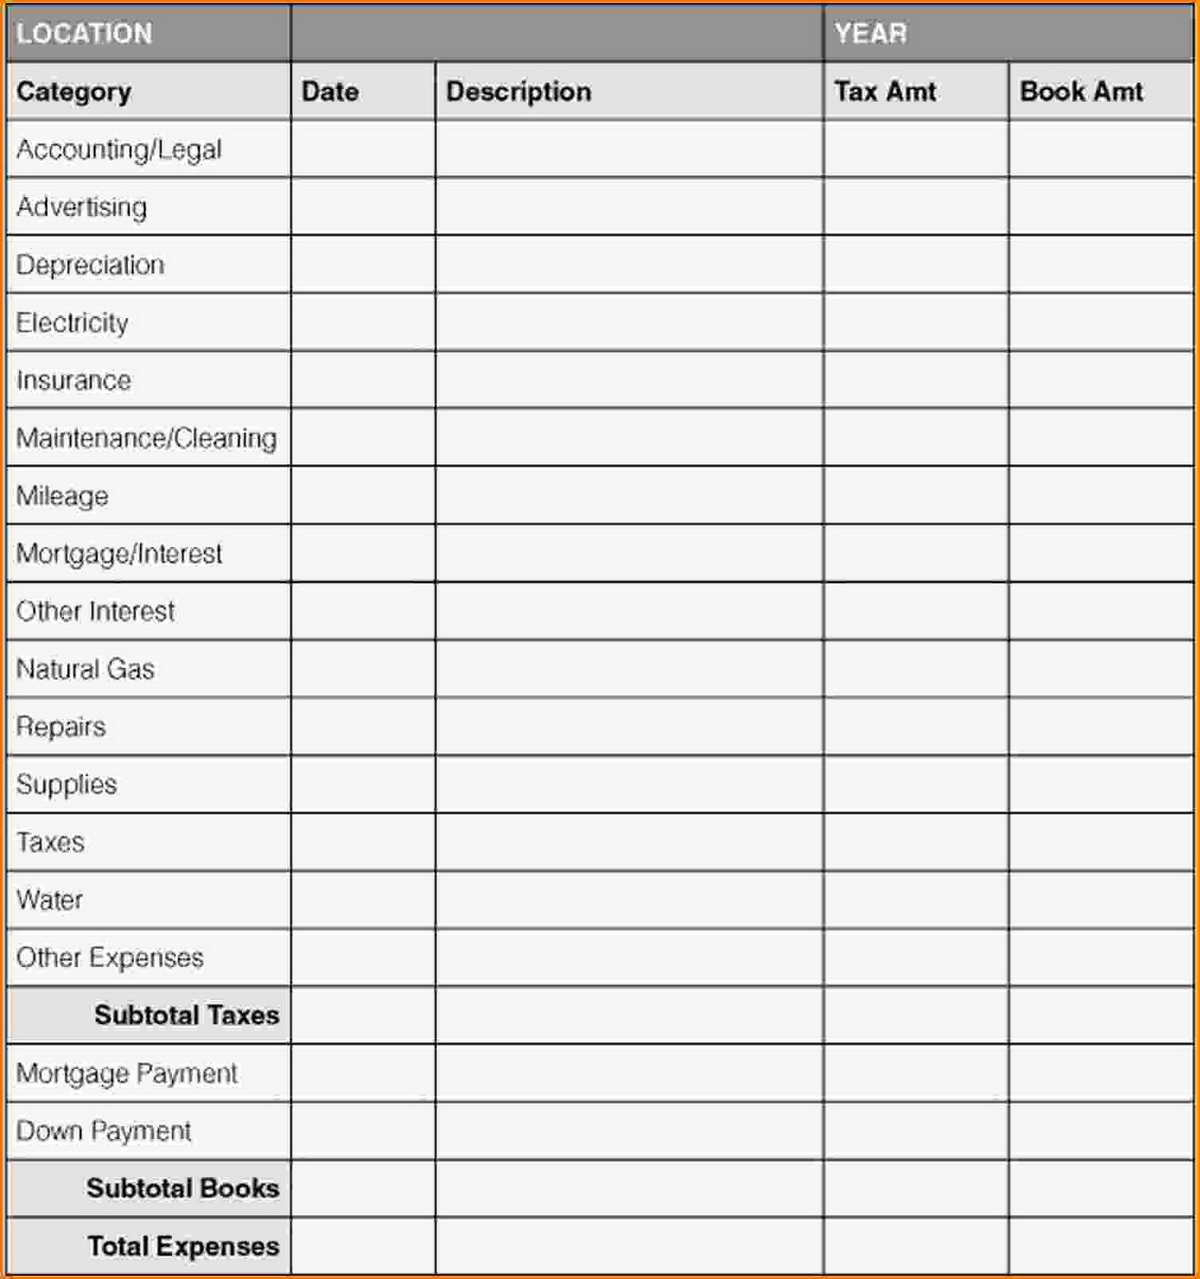 Business Expense Tracking Spreadsheet With Small Business Expenses Intended For Online Business Expense Tracker